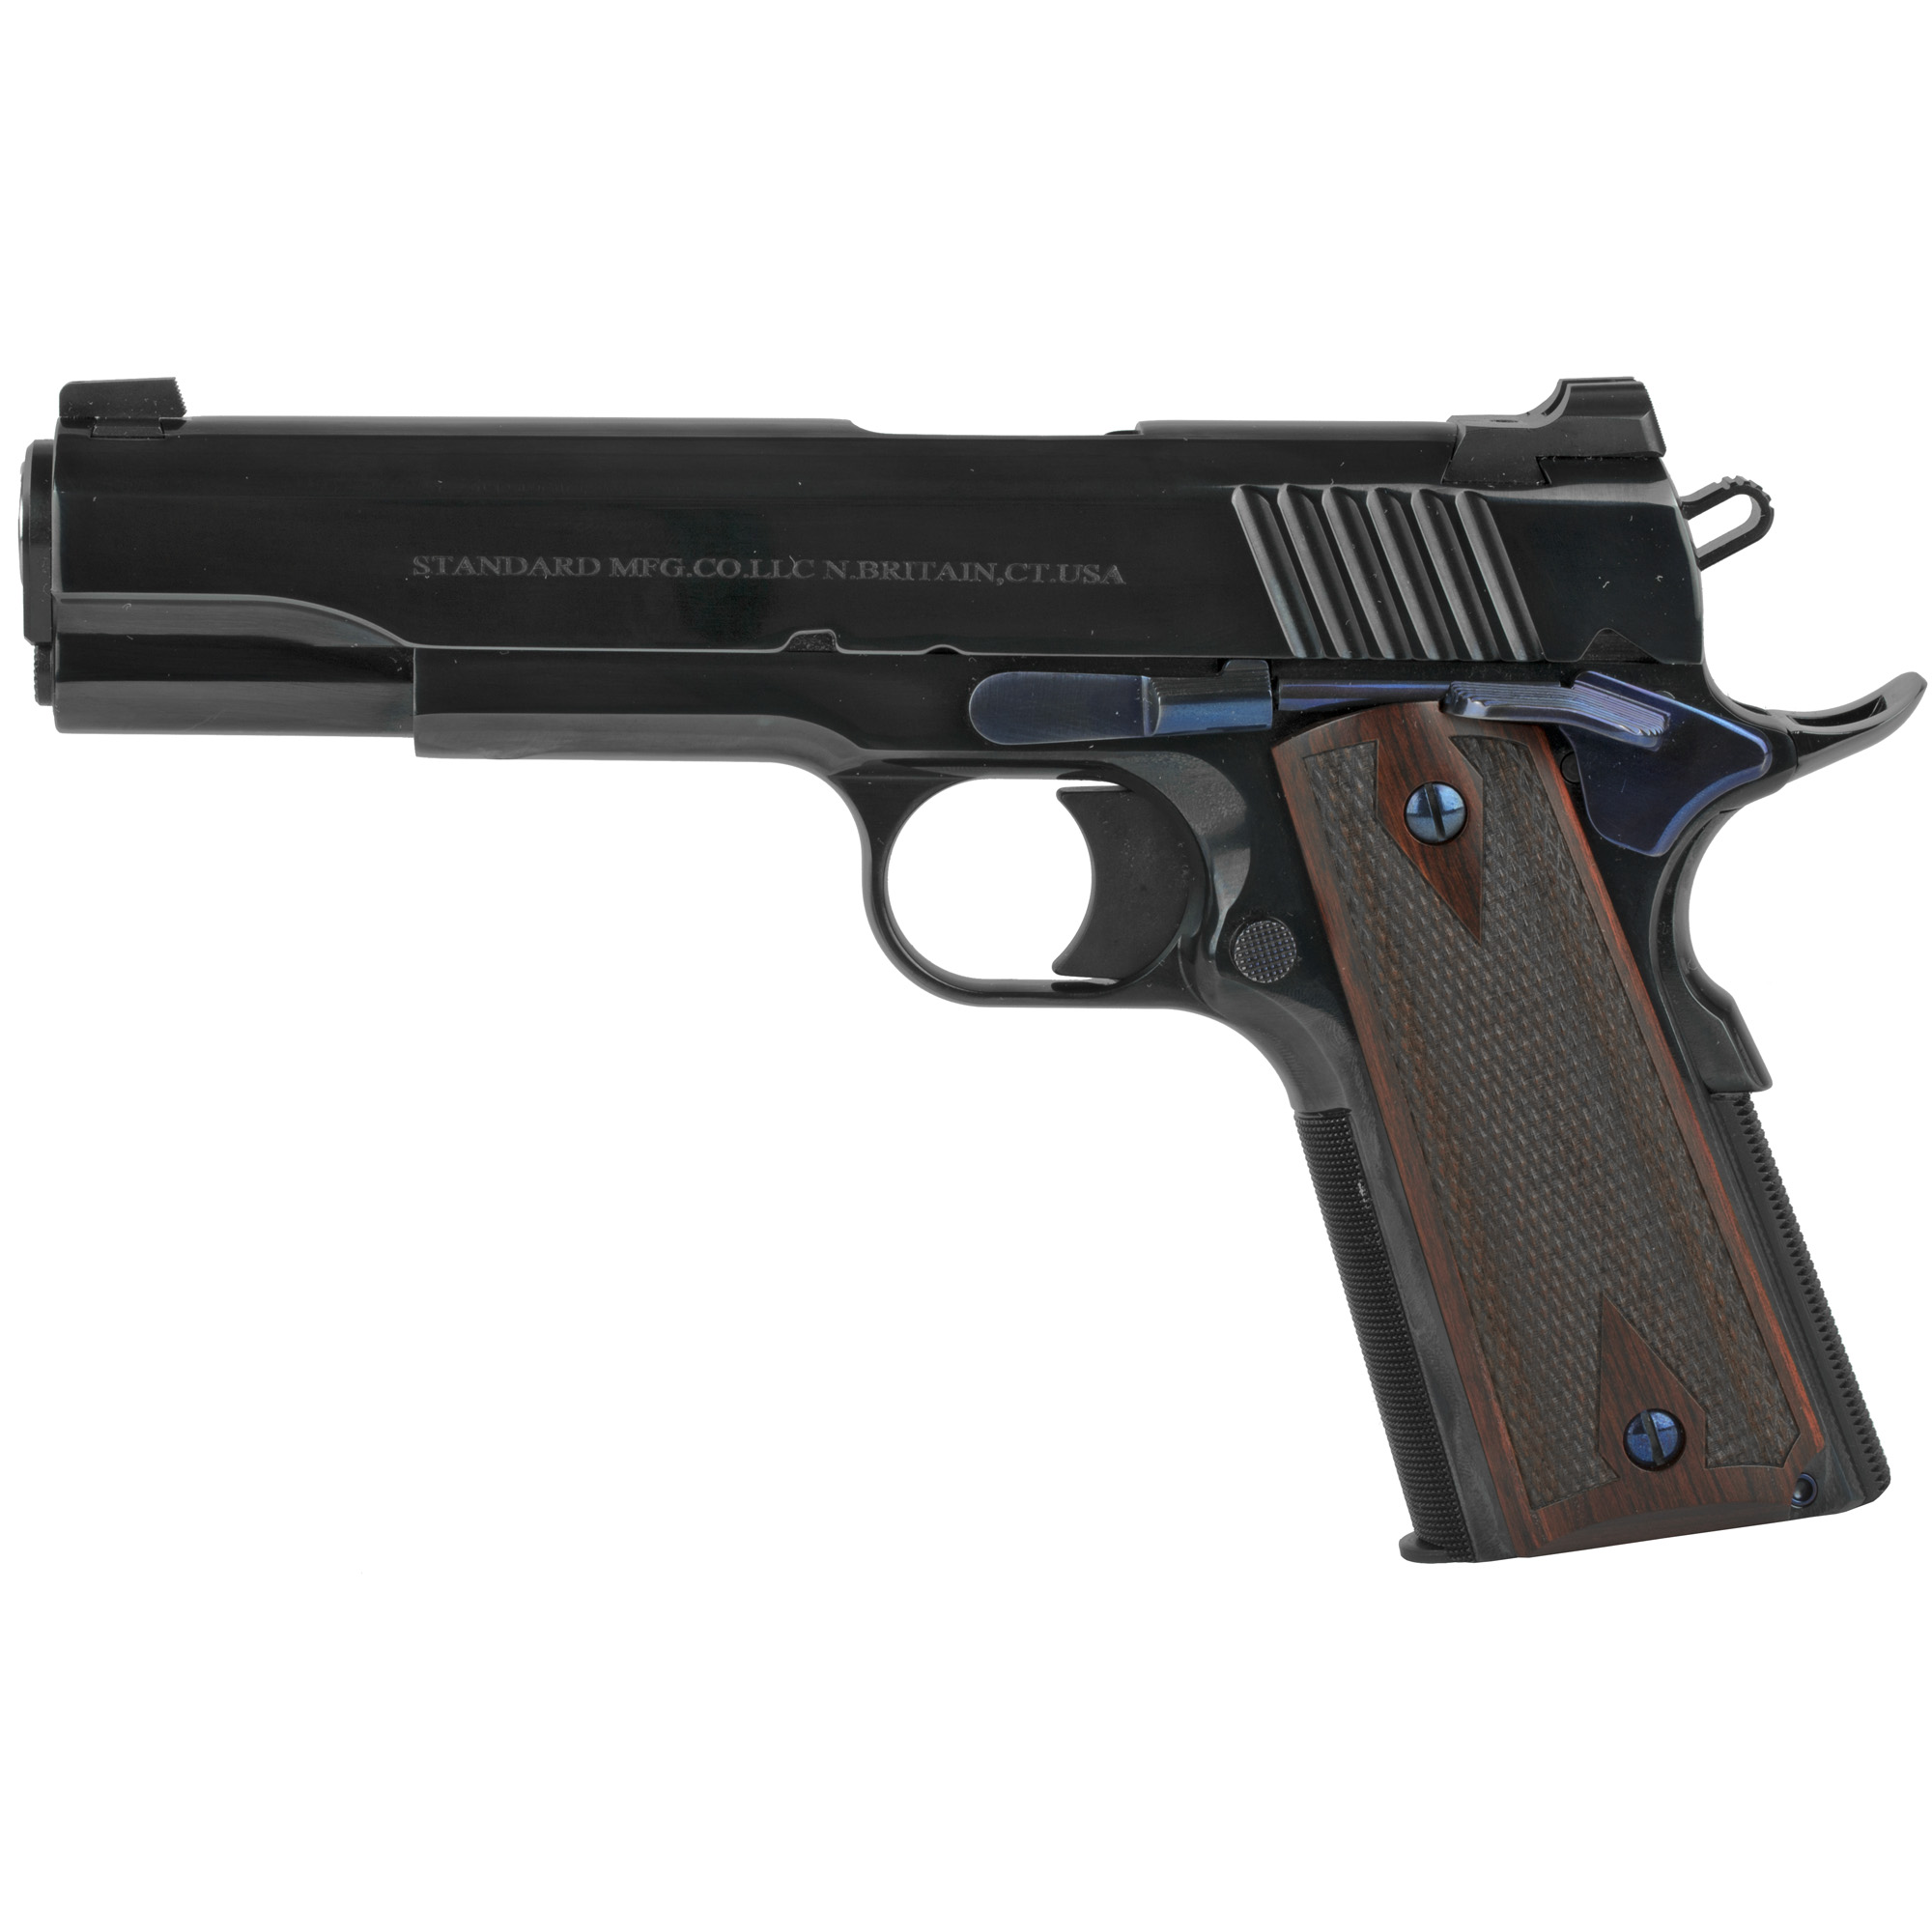 """The Standard Manufacturing 1911 is the pinnacle of the gun making art. This model with its deep Royal Blue finish is like no other 1911 available anywhere and at any price. To obtain this finish all metal surfaces must be meticulously prepared by our expert craftsman with many labor intensive hours of hand polishing and stoning. No other manufacturer that we know of is capable of producing this level of finish. In fact"""" this Royal Blue finish is only encountered on the very best guns manufactured many decades ago when time and labor was not a major factor but craftsmanship was. At all stages of manufacturing this gun we employ the same fundamental principles. All of the metal to metal fits are as perfect as can be performed by the most skilled gunsmith."""